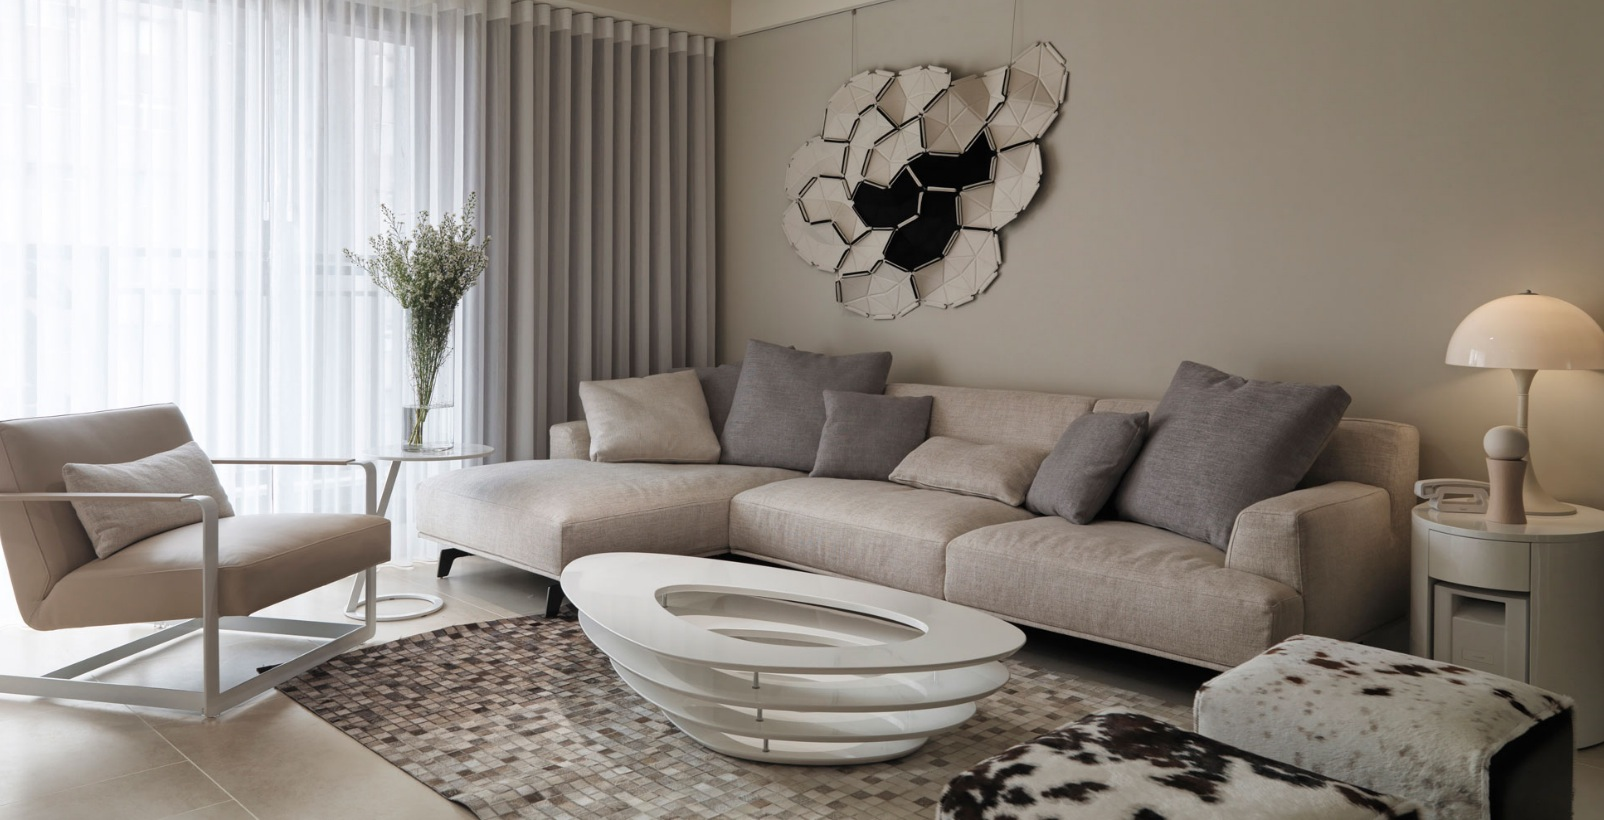 Neutral contemporary apartment by w c h design studio - Beige kombinieren ...